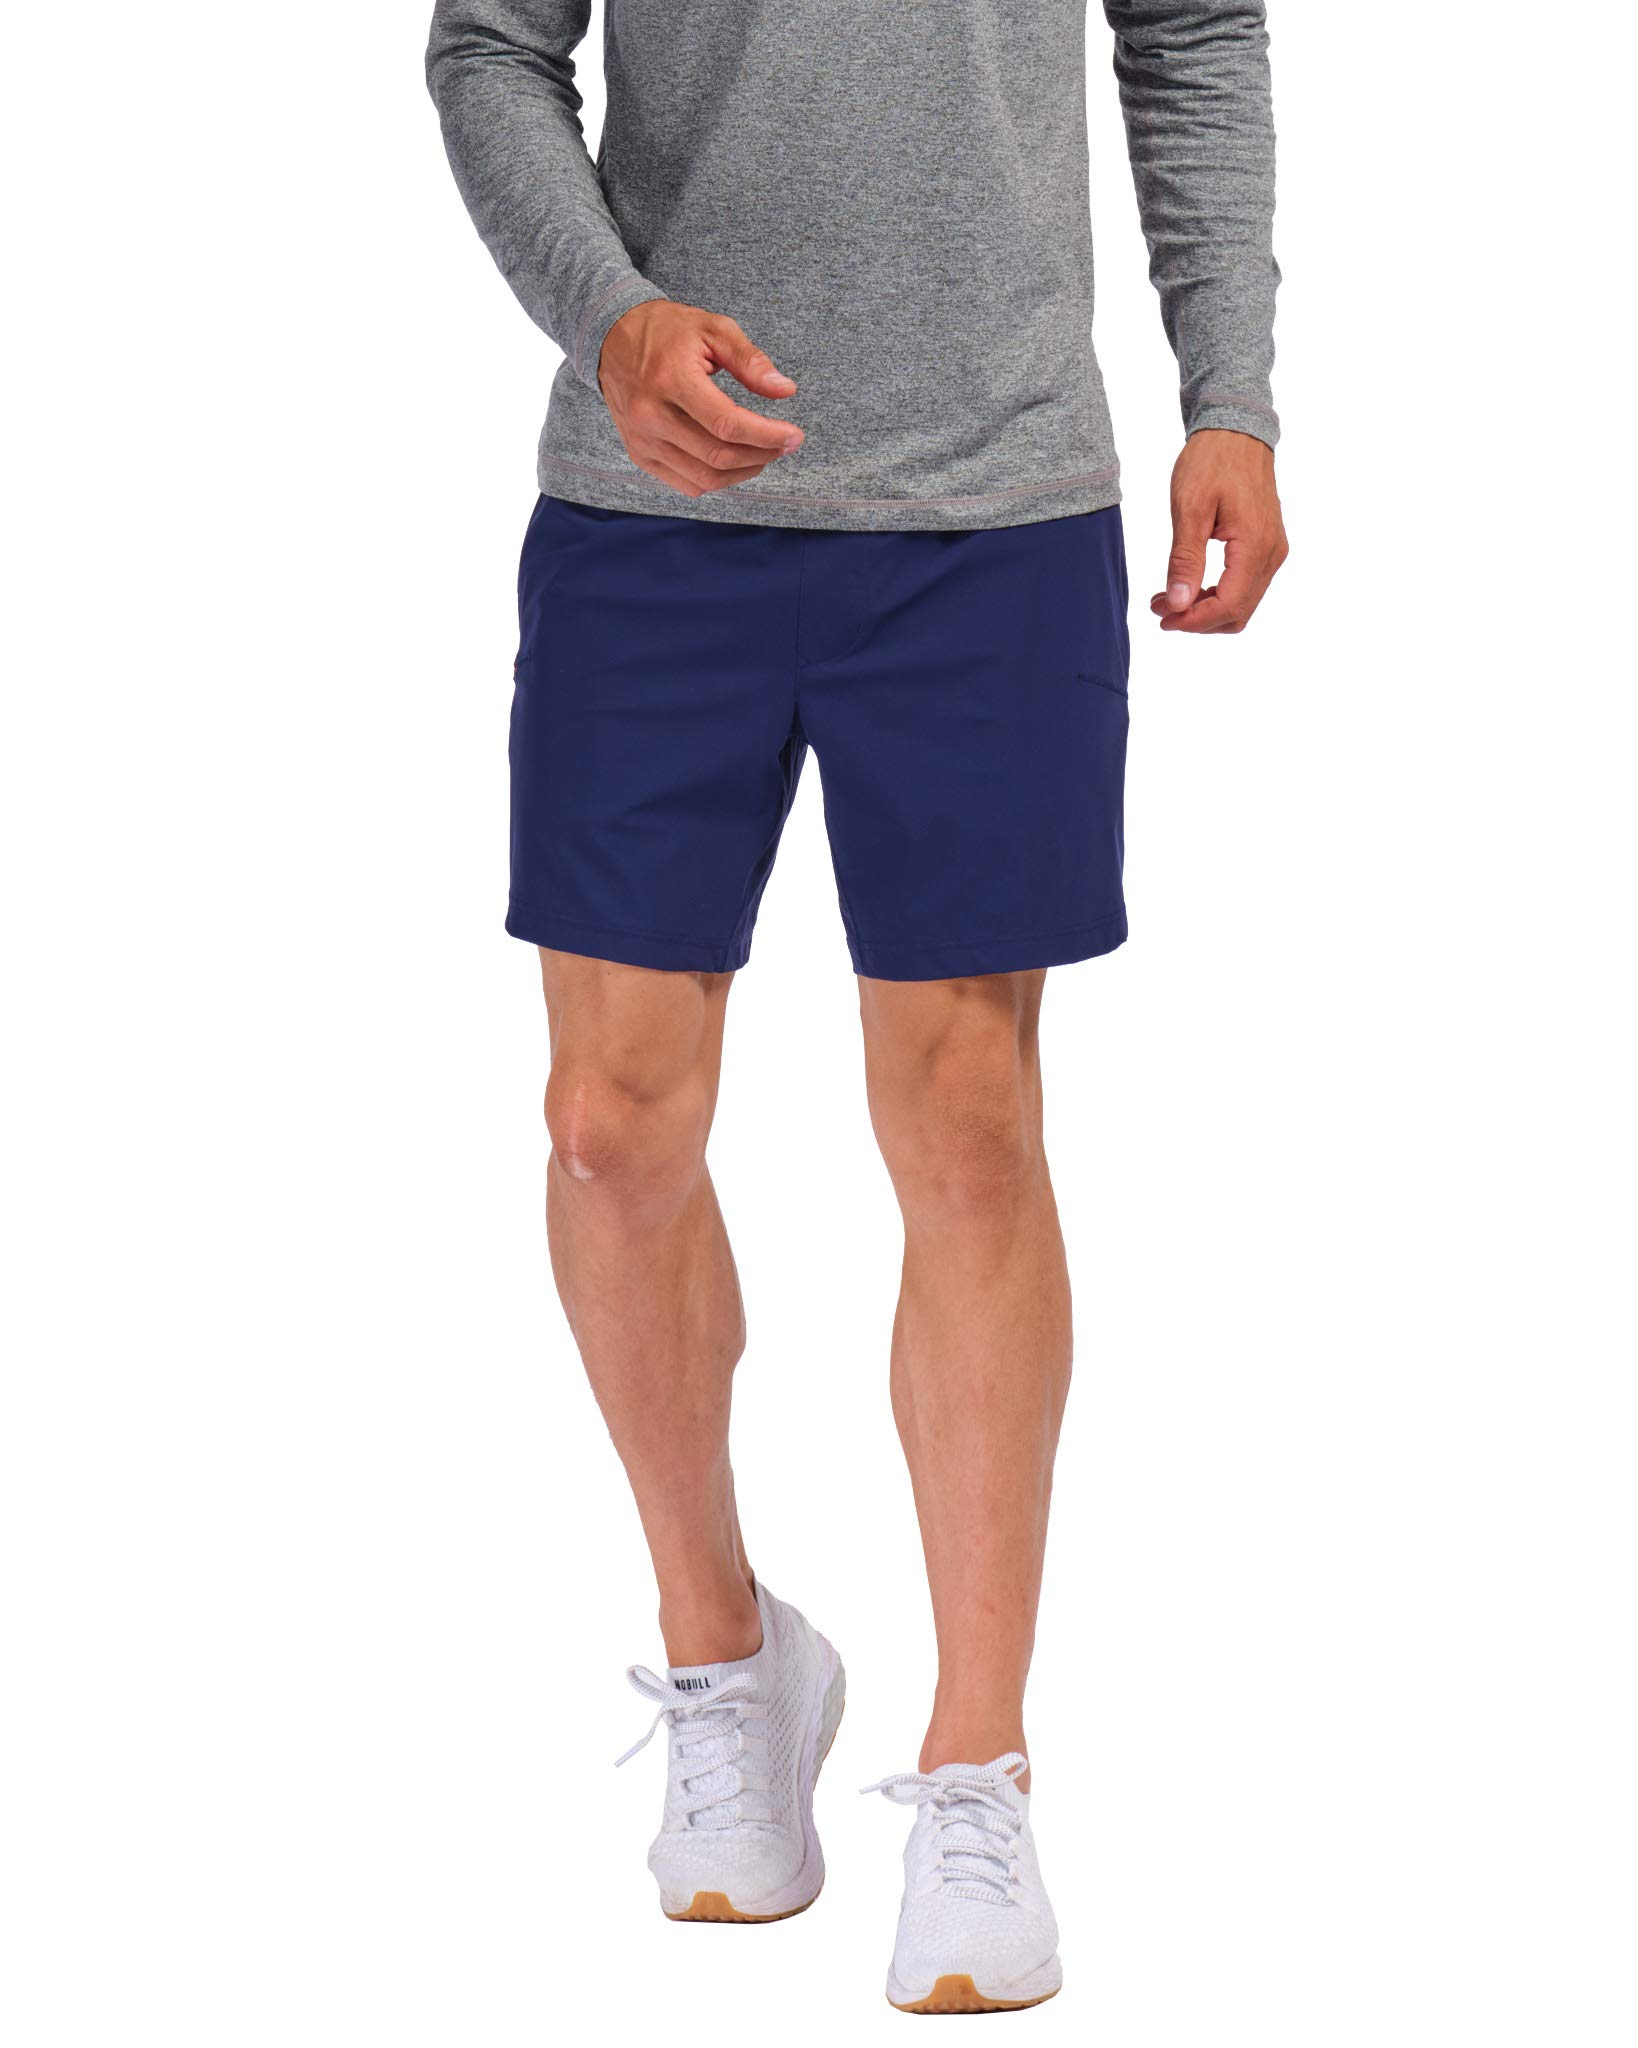 """Rhone 7"""" Versatility Short Lined Navy Large Quick-Drying Stretch Athletic Workout Performance Training Shorts"""